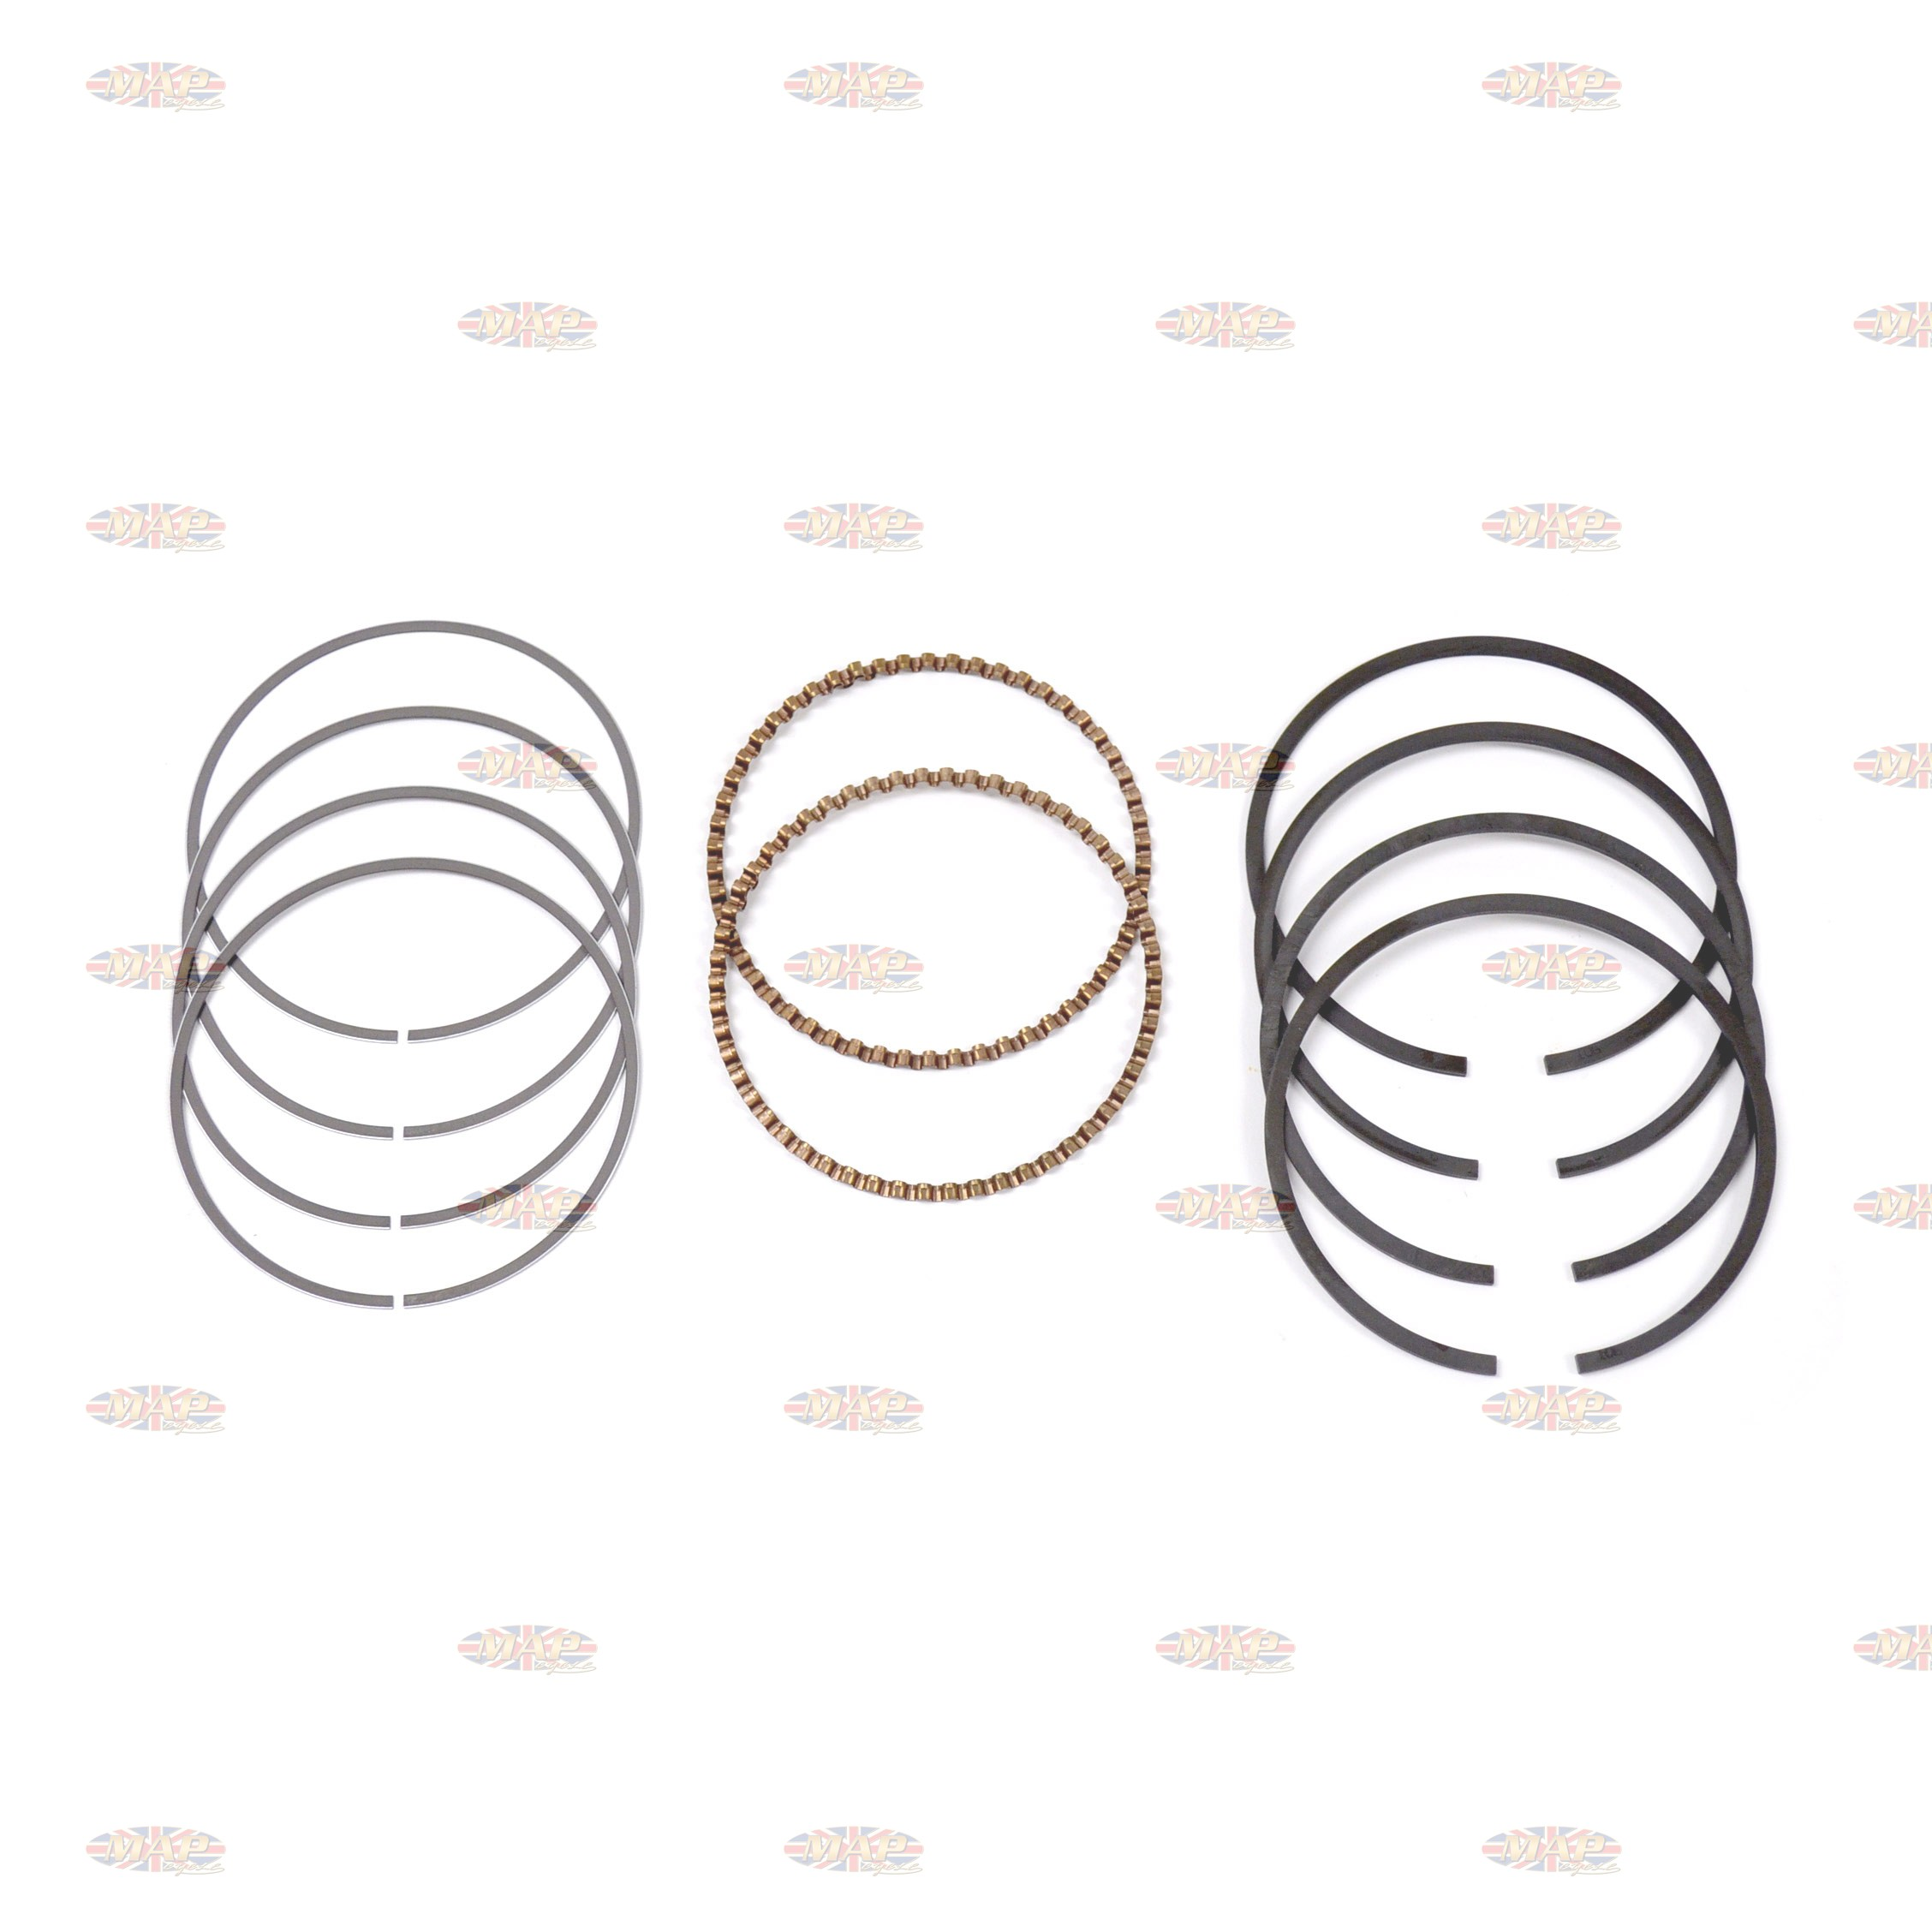 Norton 850 Commando Piston Rings R26730